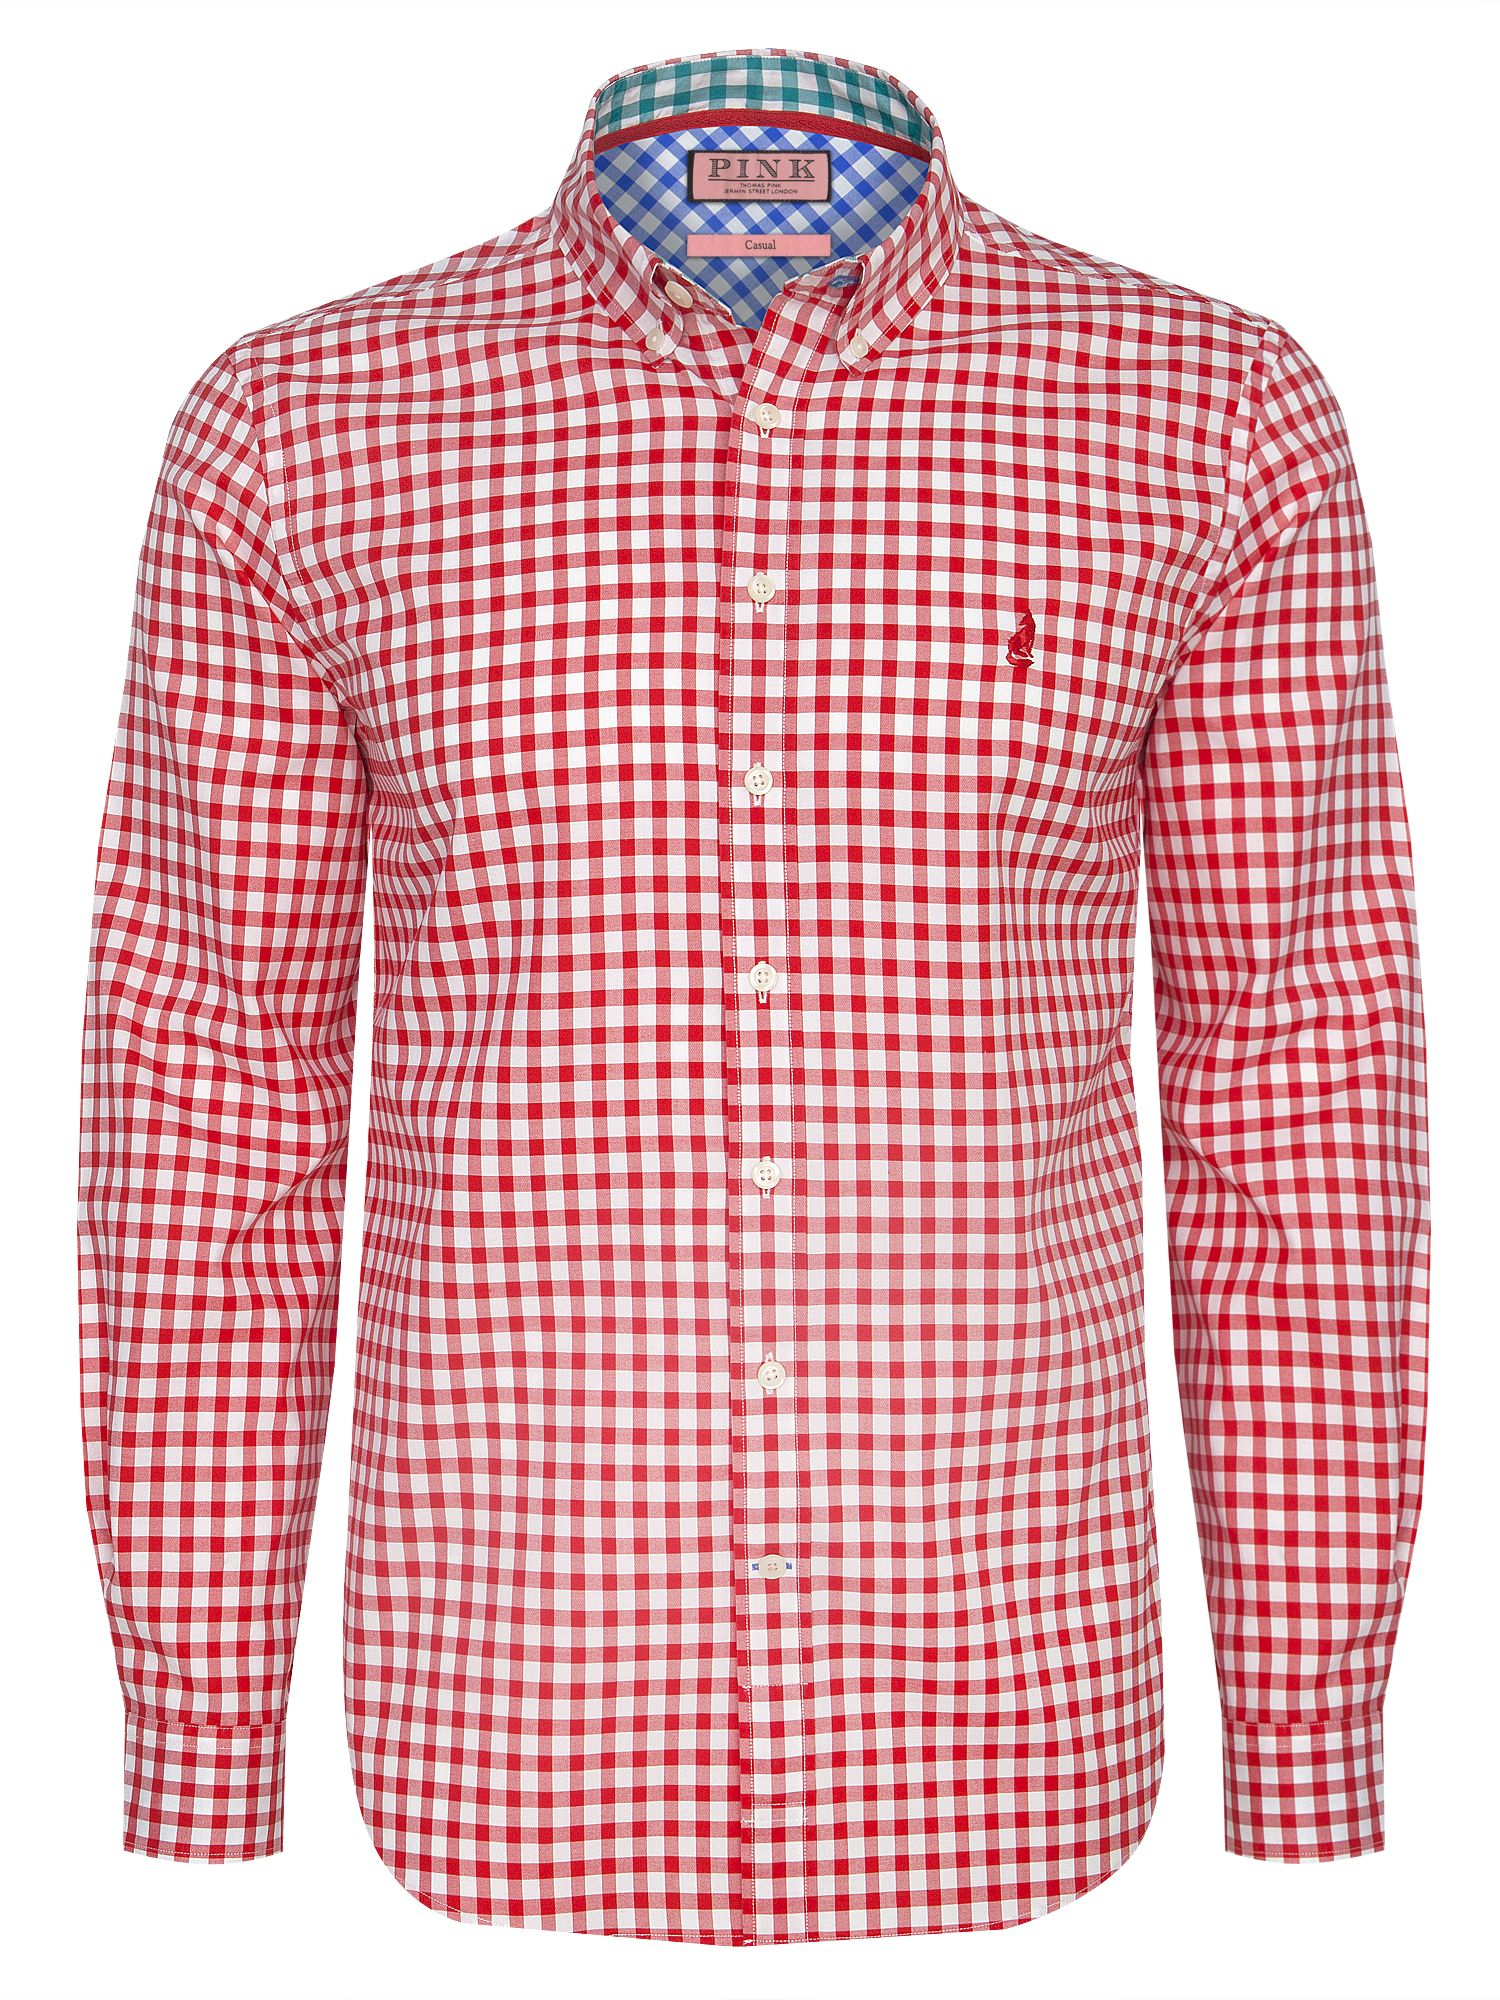 Thomas Pink Mens Shirts | Is Shirt